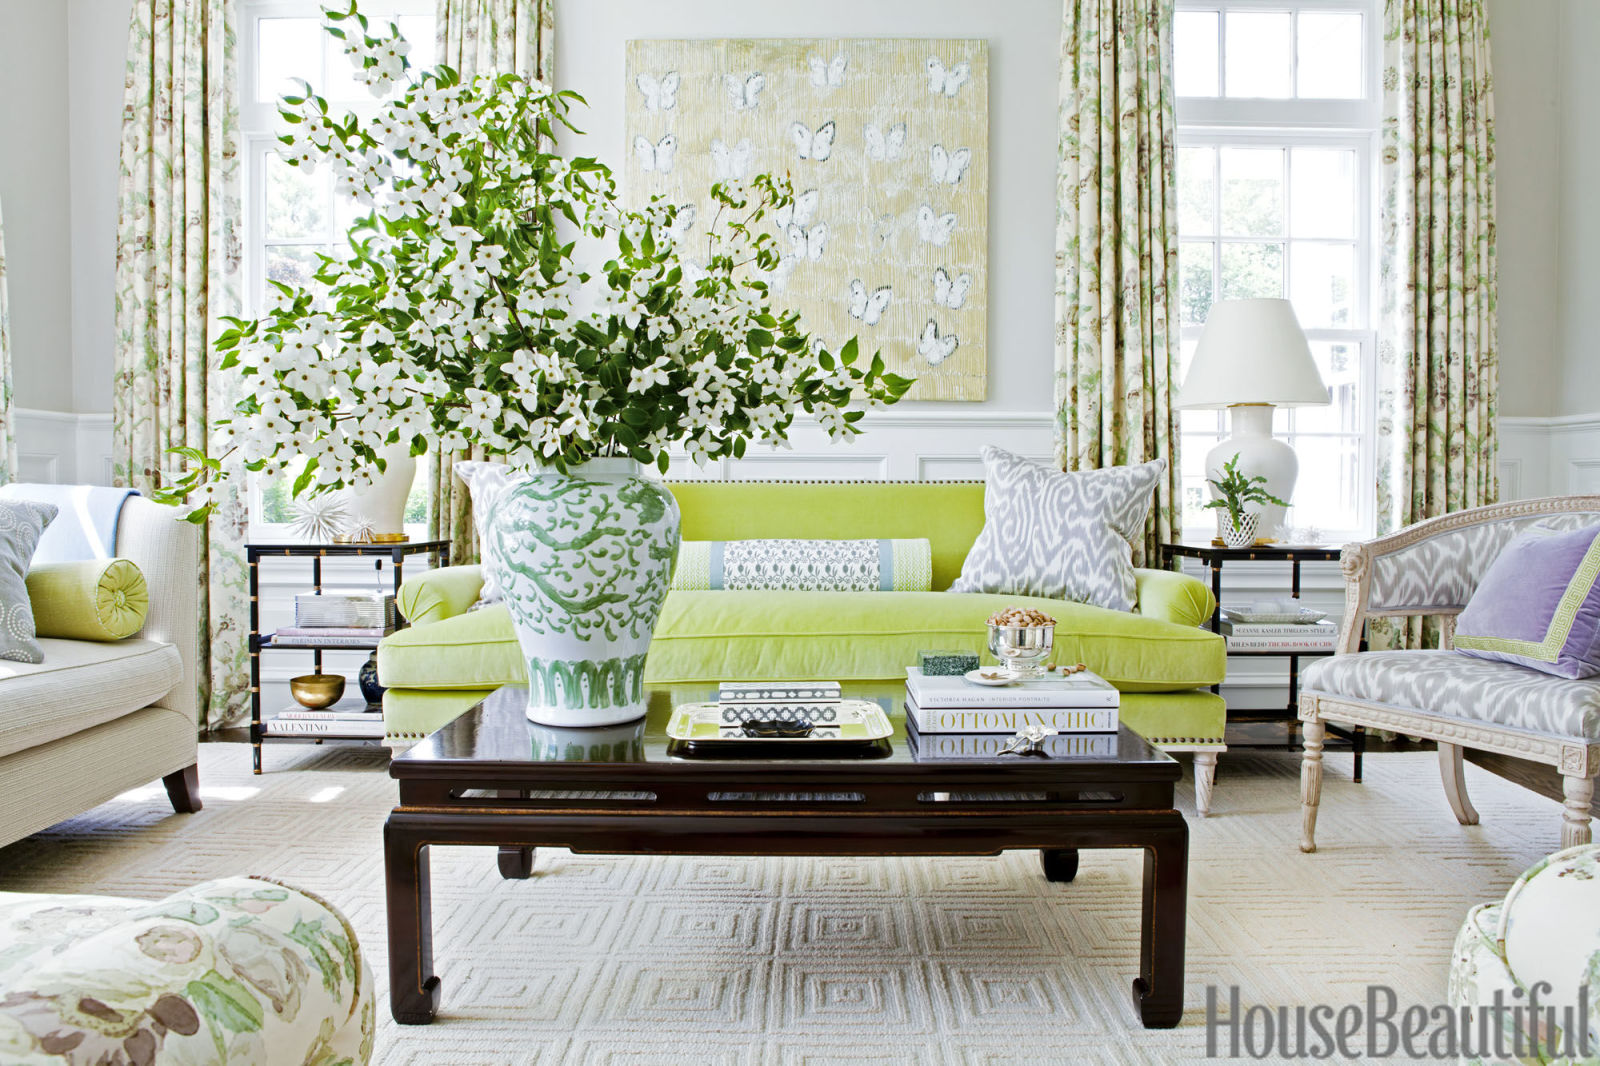 Living Room Ideas House Beautiful designer ashley whittaker decorates this westchester county home